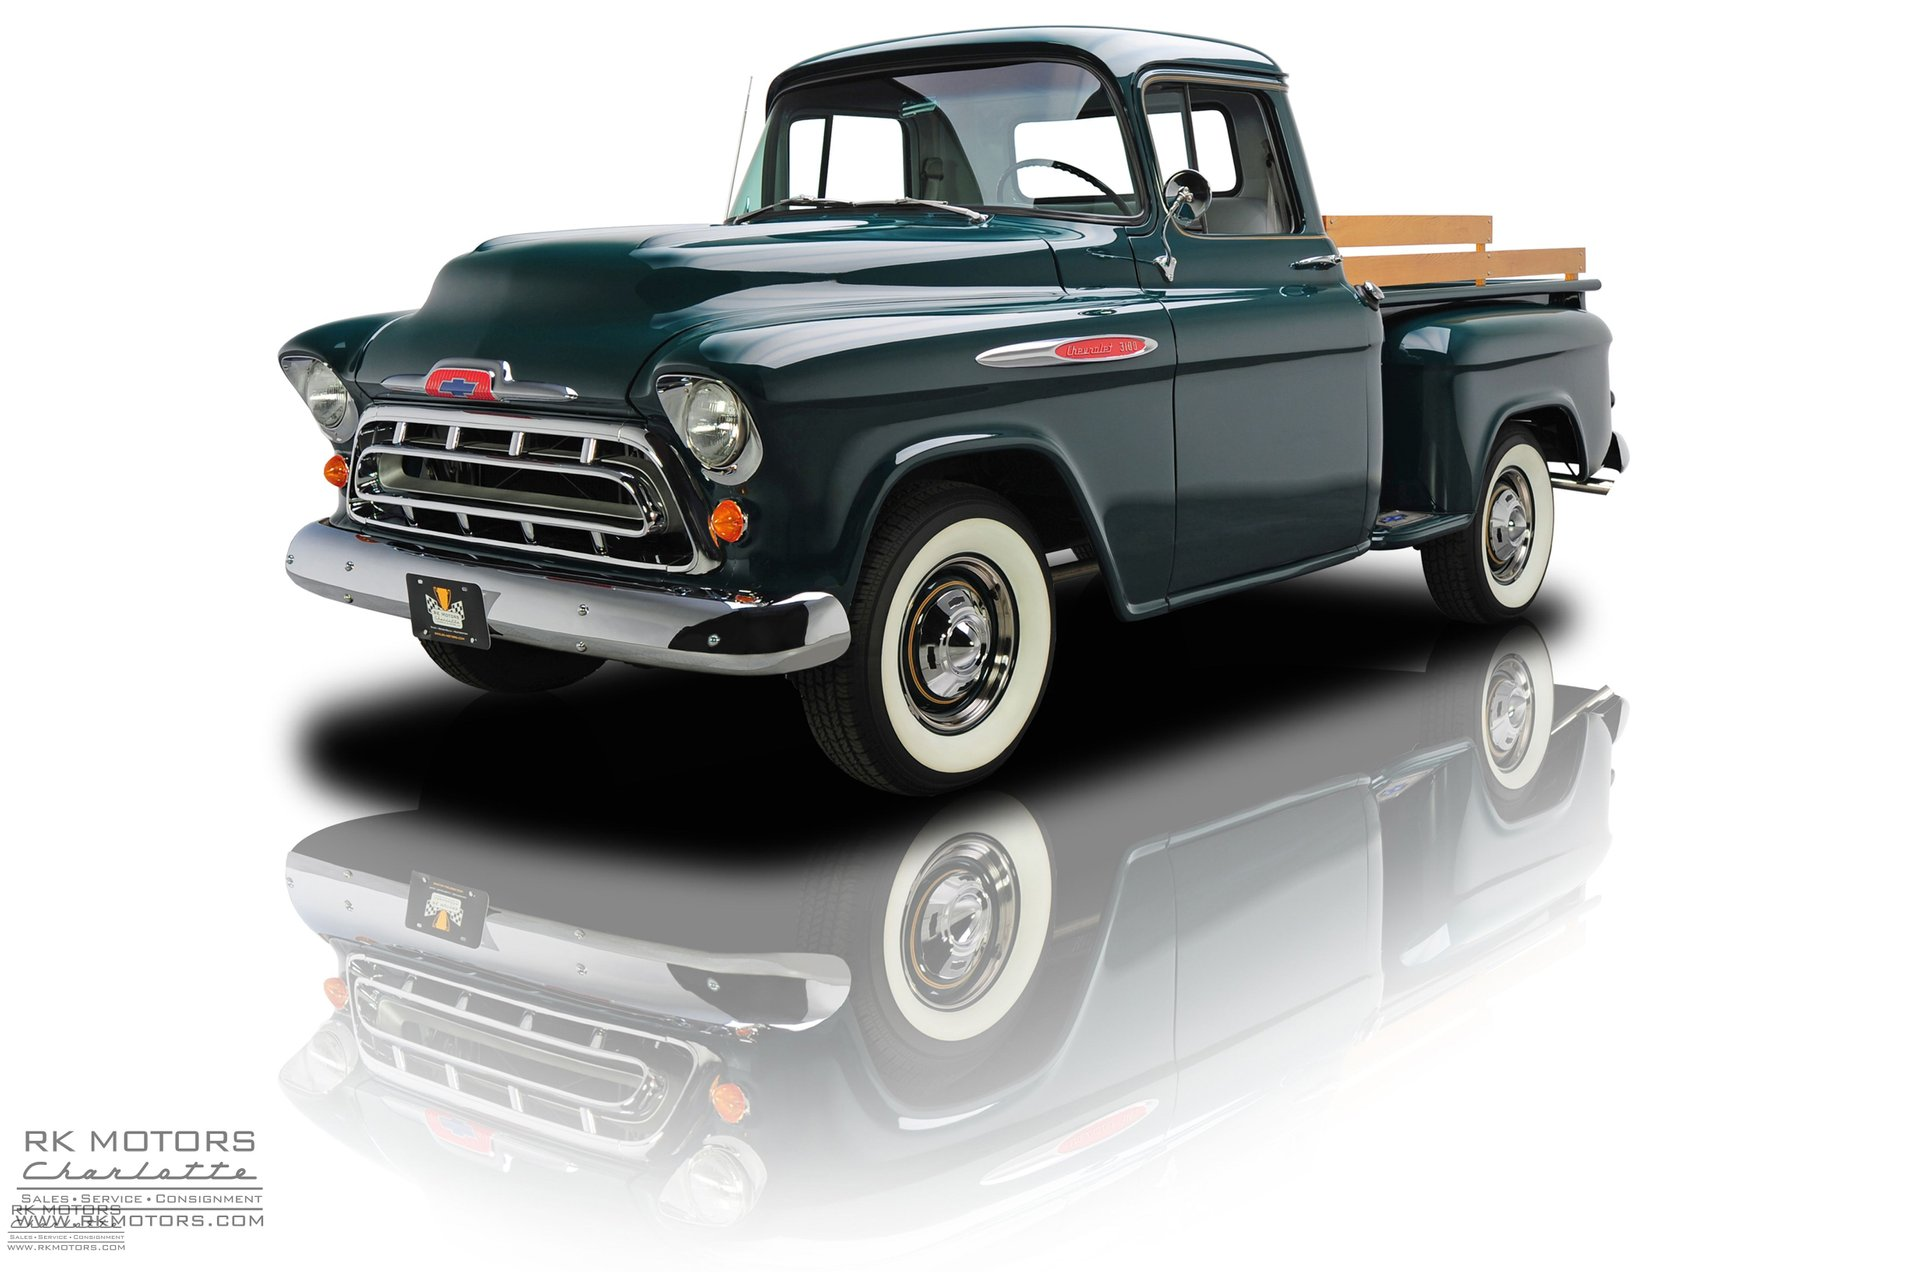 132767 1957 Chevrolet 3100 Rk Motors Classic Cars And Muscle Cars For Sale